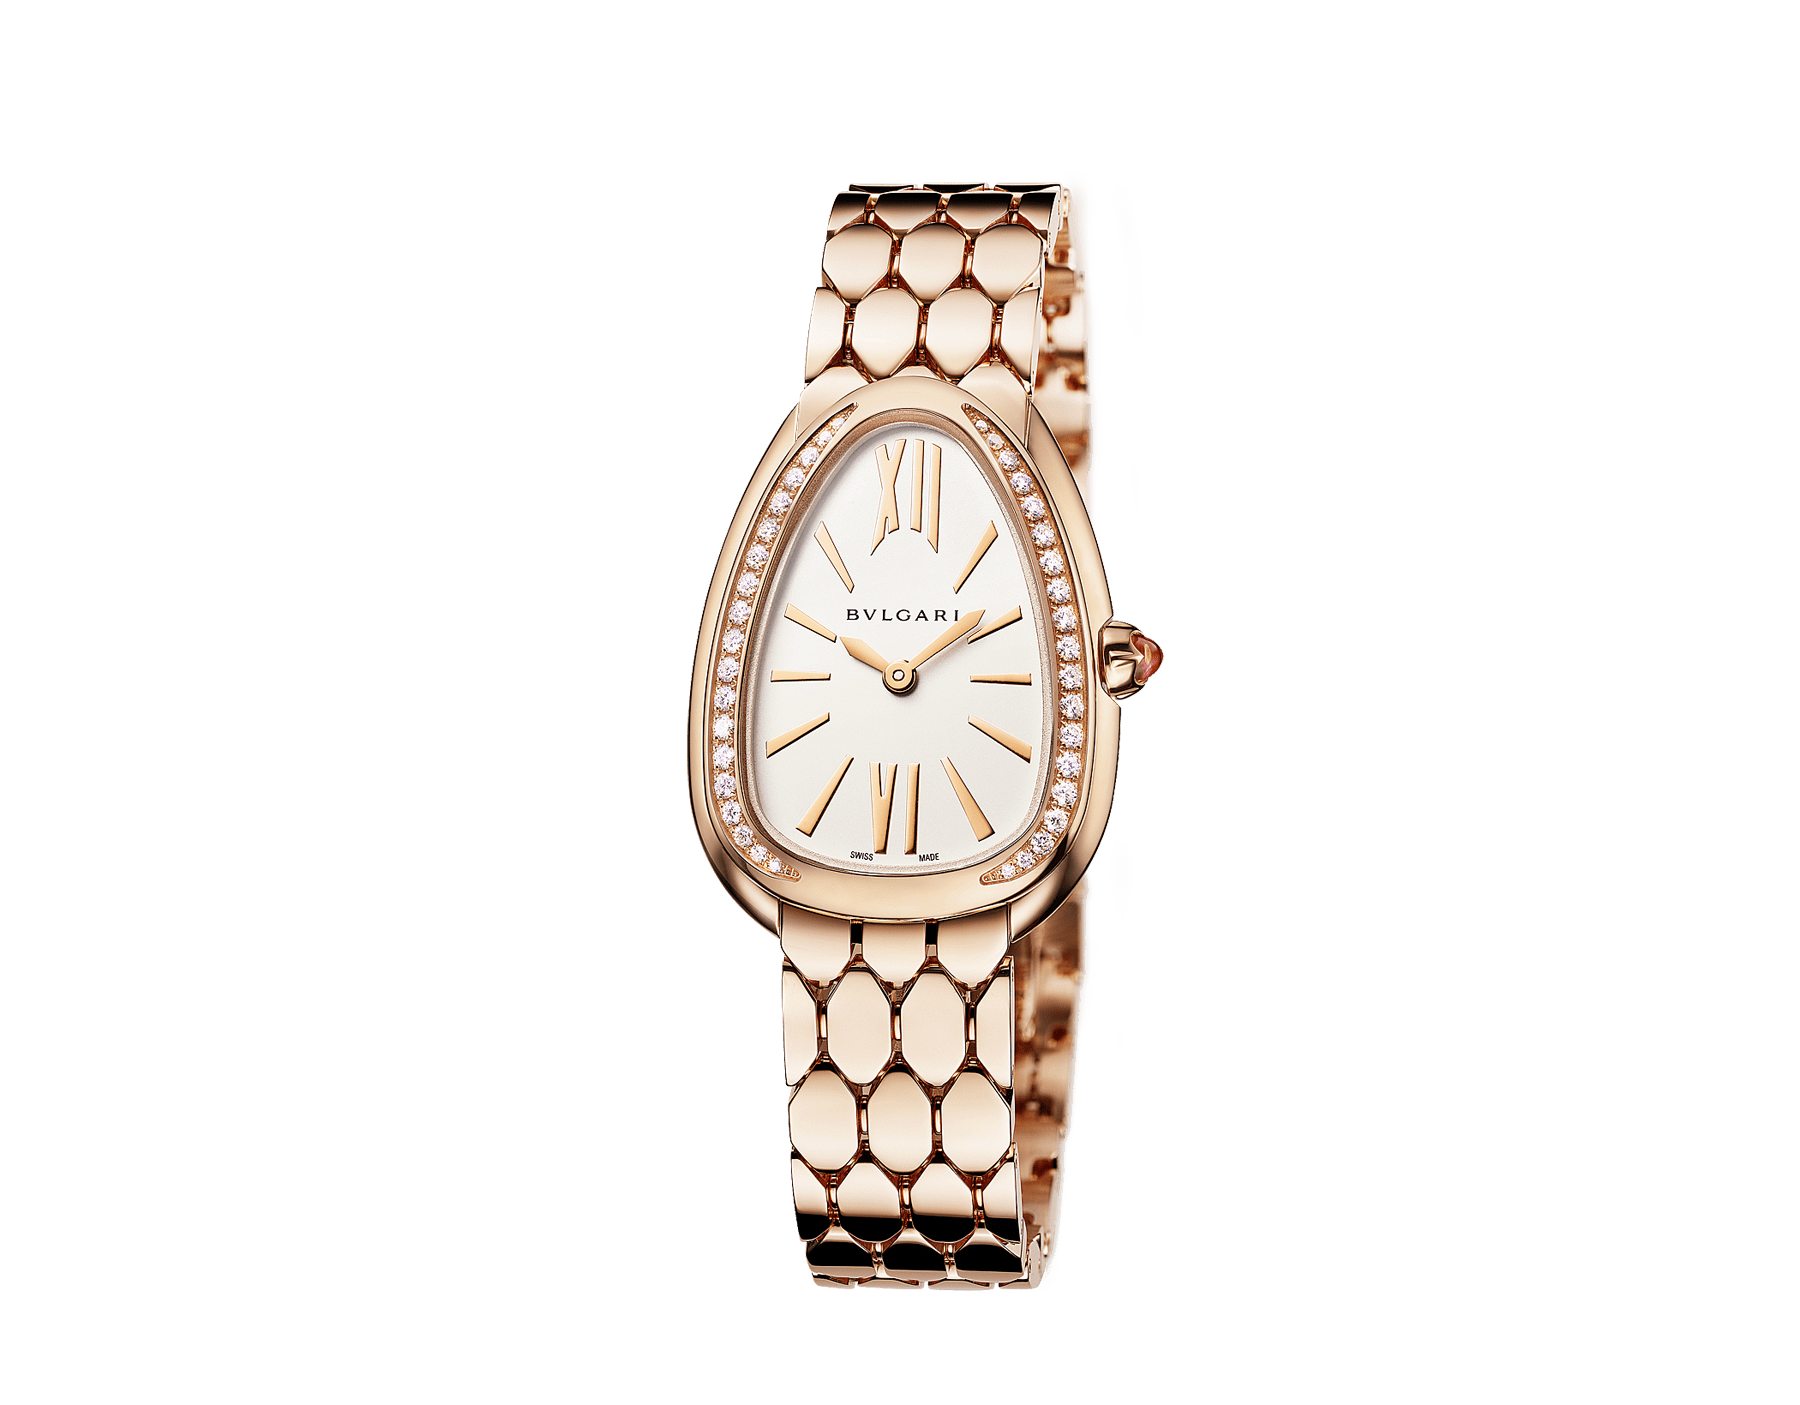 Serpenti Seduttori watch with 18 kt rose gold case, 18 kt rose gold bracelet, 18 kt rose gold bezel set with diamonds and a white silver opaline dial. 103146 image 2